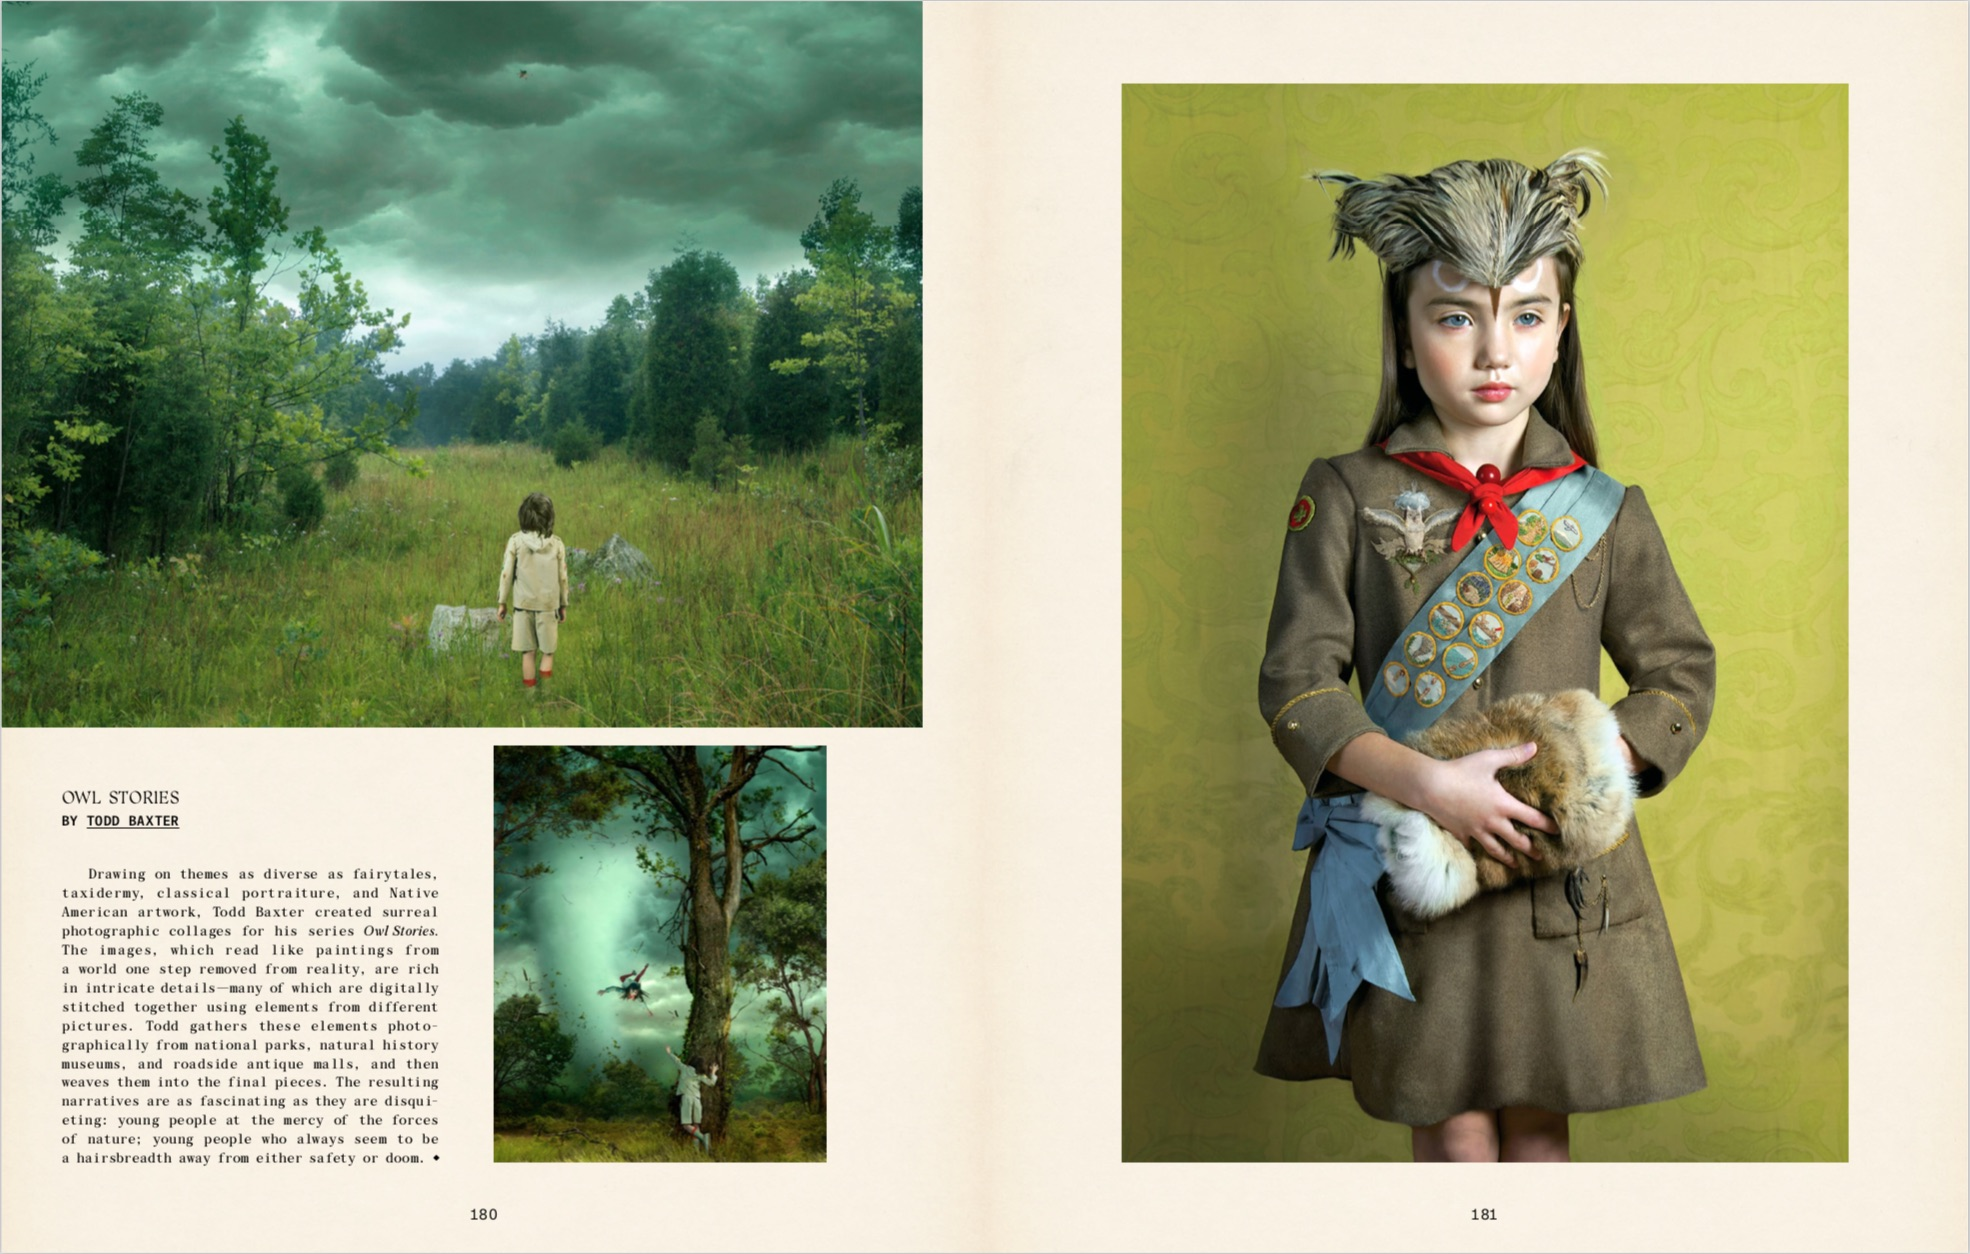 From Wildside: the Enchanted Life of Hunters and Gatherers copyright Gestalten 2016